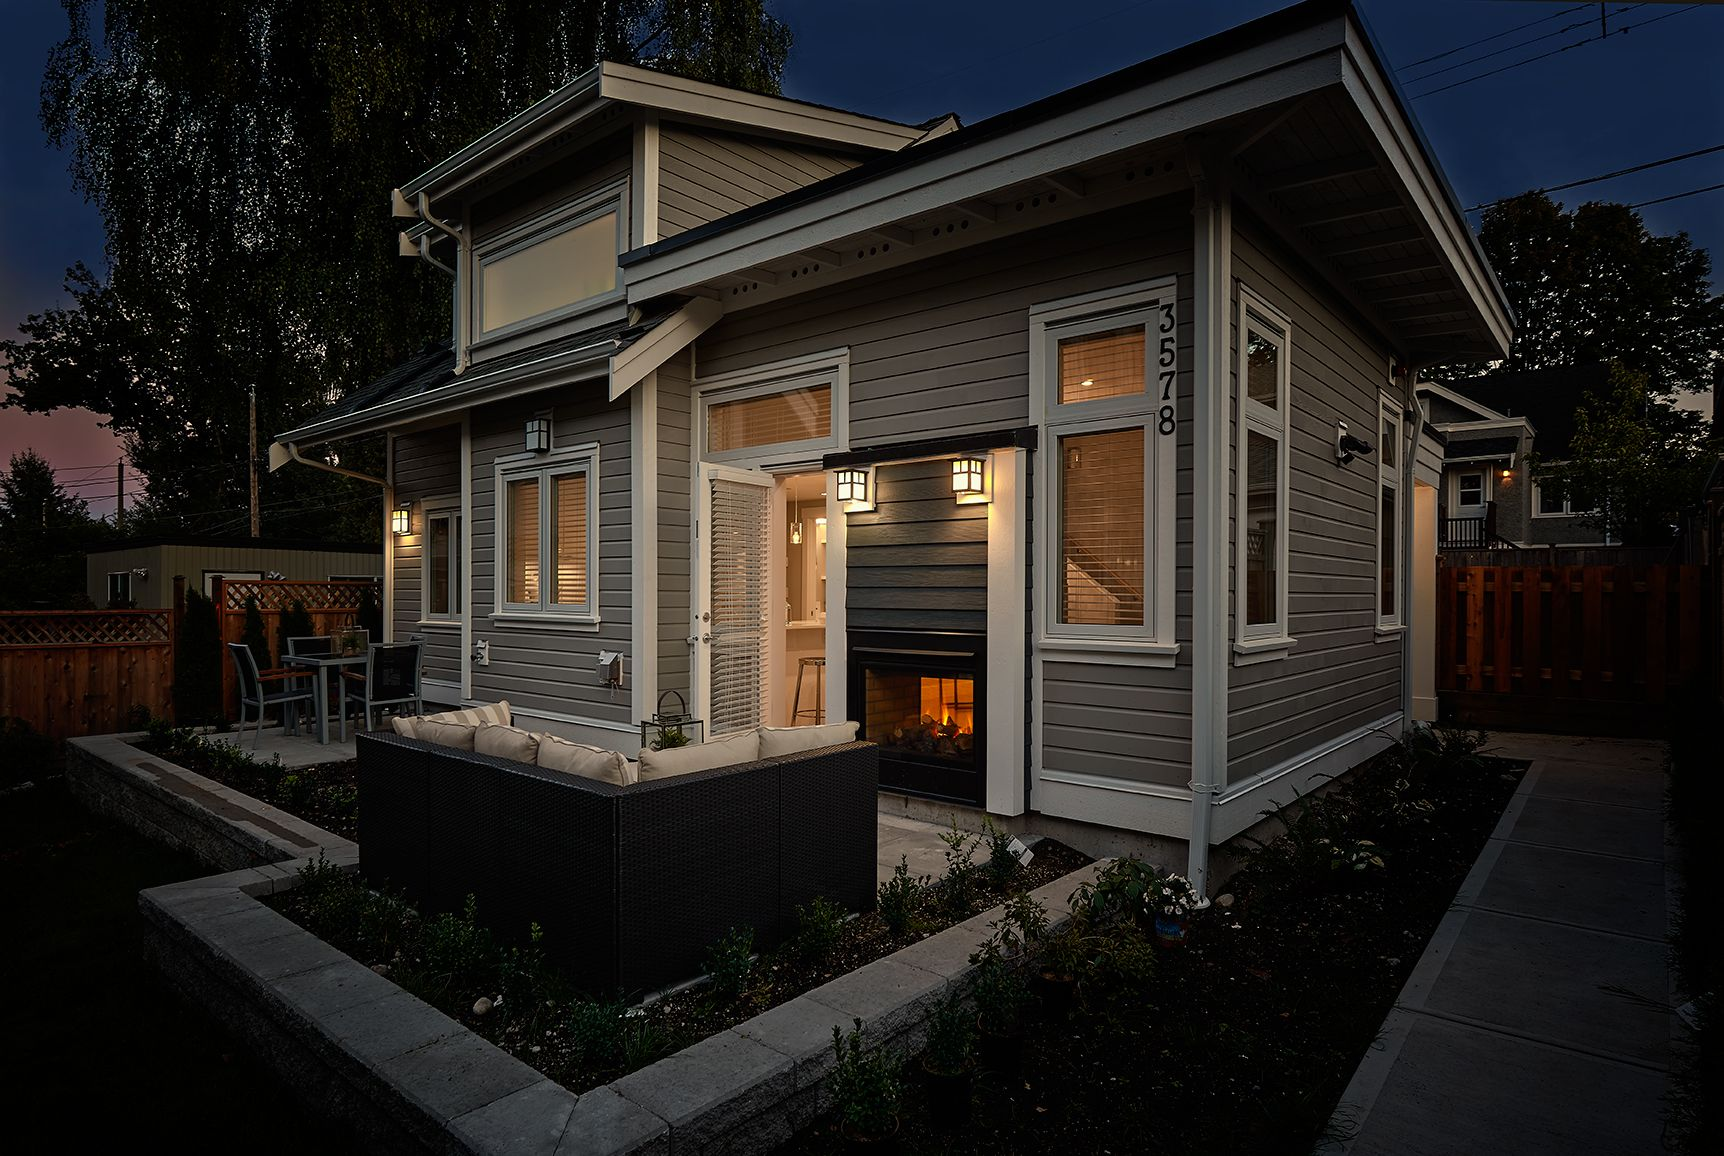 The Biggest Little House 700 Sq Ft Tiny Spaces Pinterest Sun Green Roofs And Fireplaces